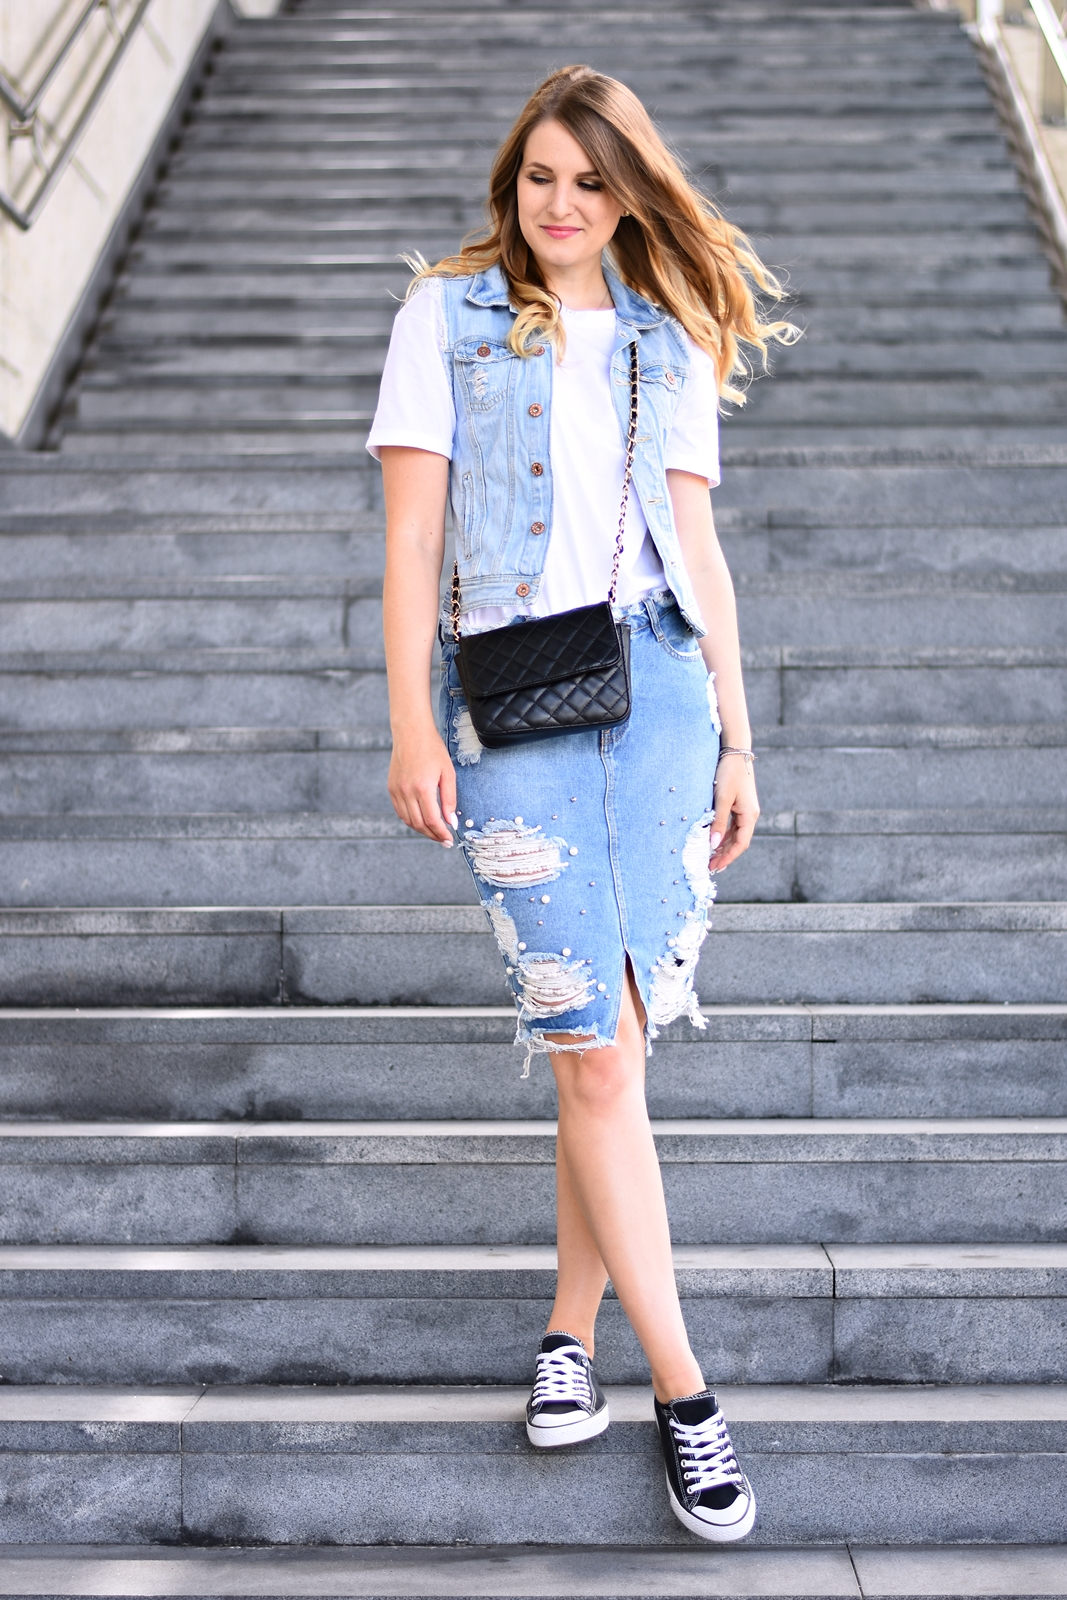 Denim on Denim - so stylst du den double Denim Style richtig - Jeans Kombination - Jeansrock - Fashionladyloves by Tamara Wagner - Fashionblog - Mode Blog